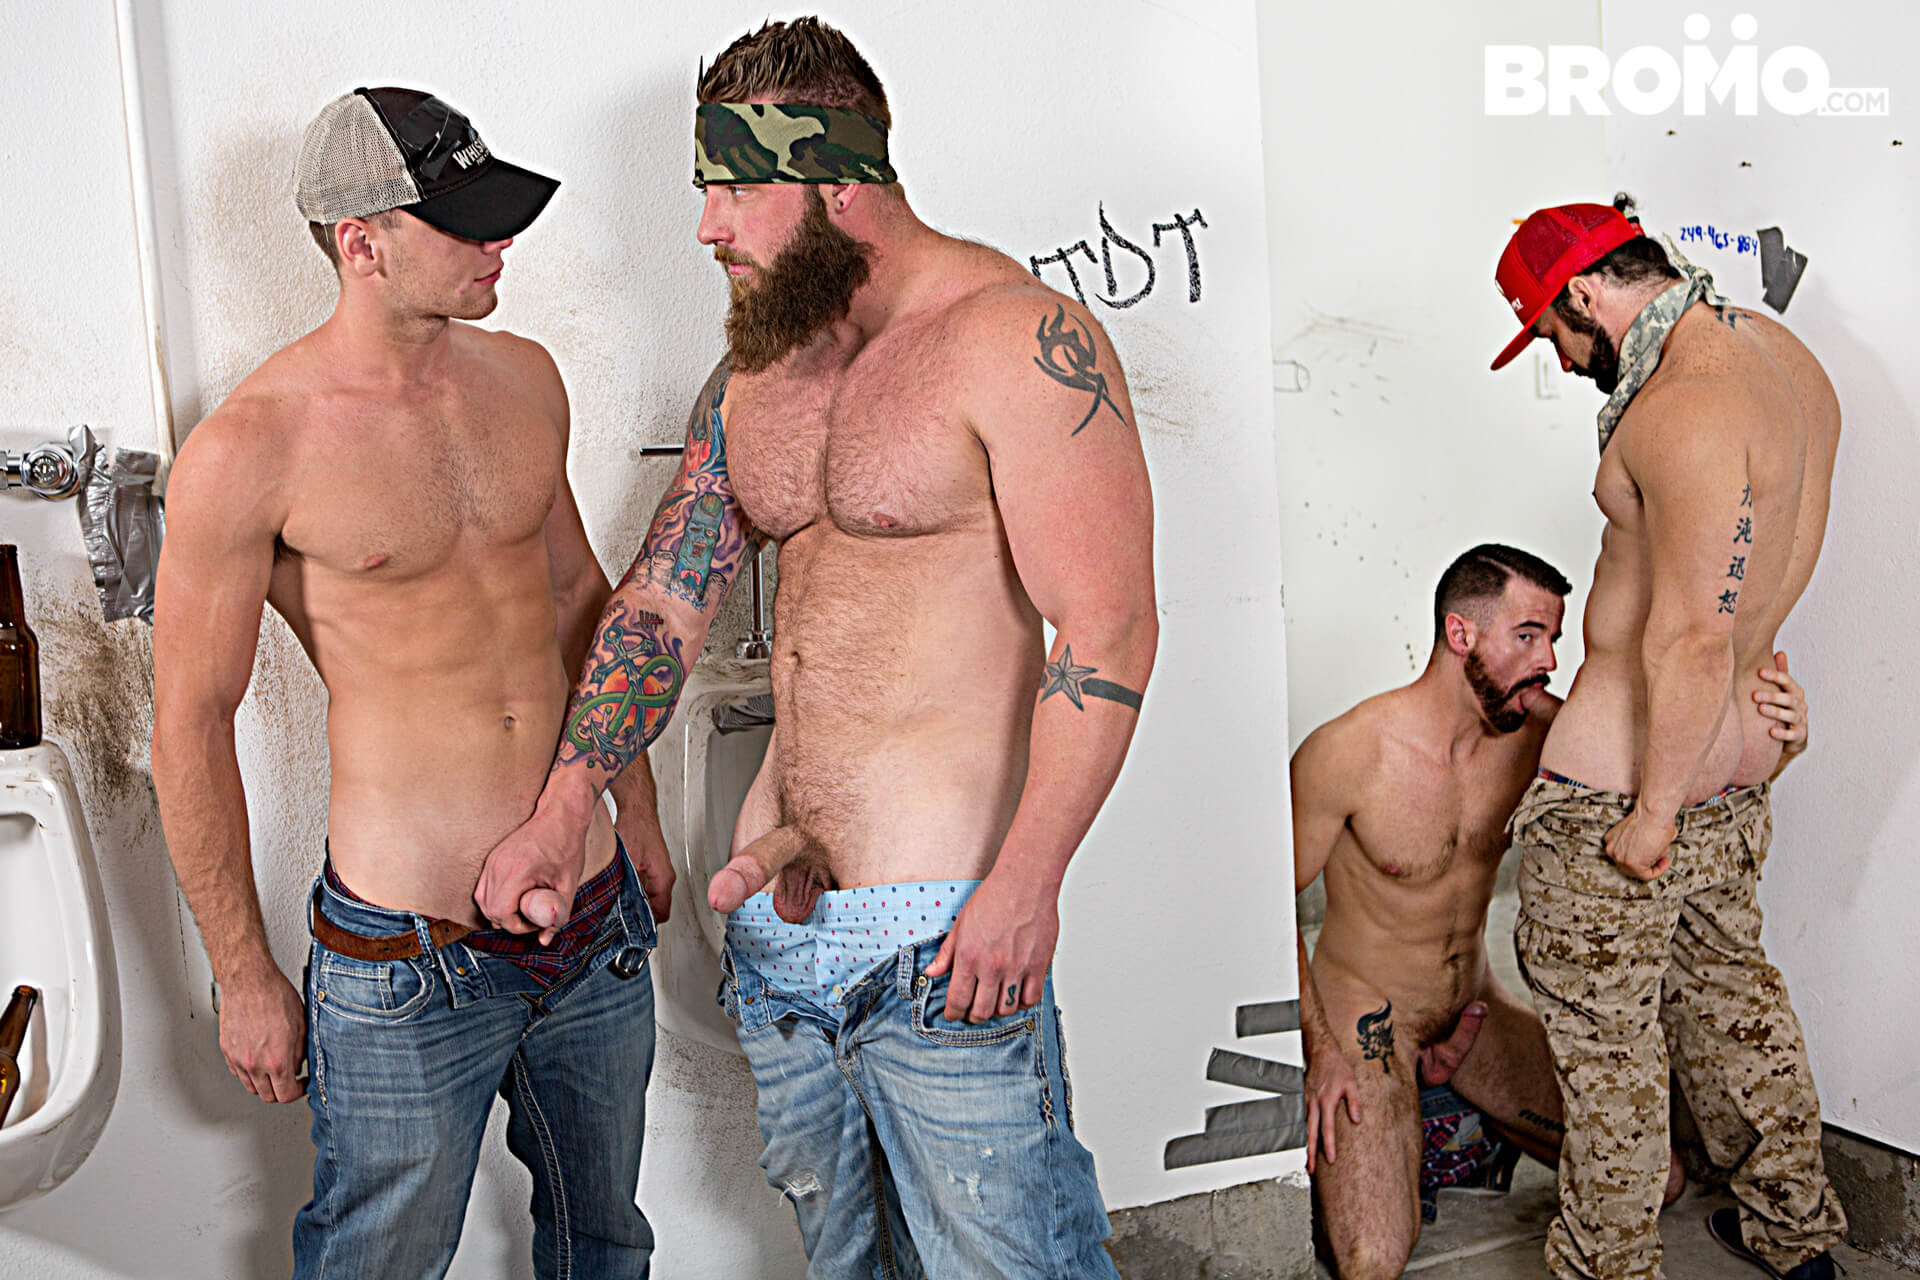 bromo the rednecks part 4 jaxton wheeler brandon evans aaron bruiser brendan patrick gay porn blog image 19